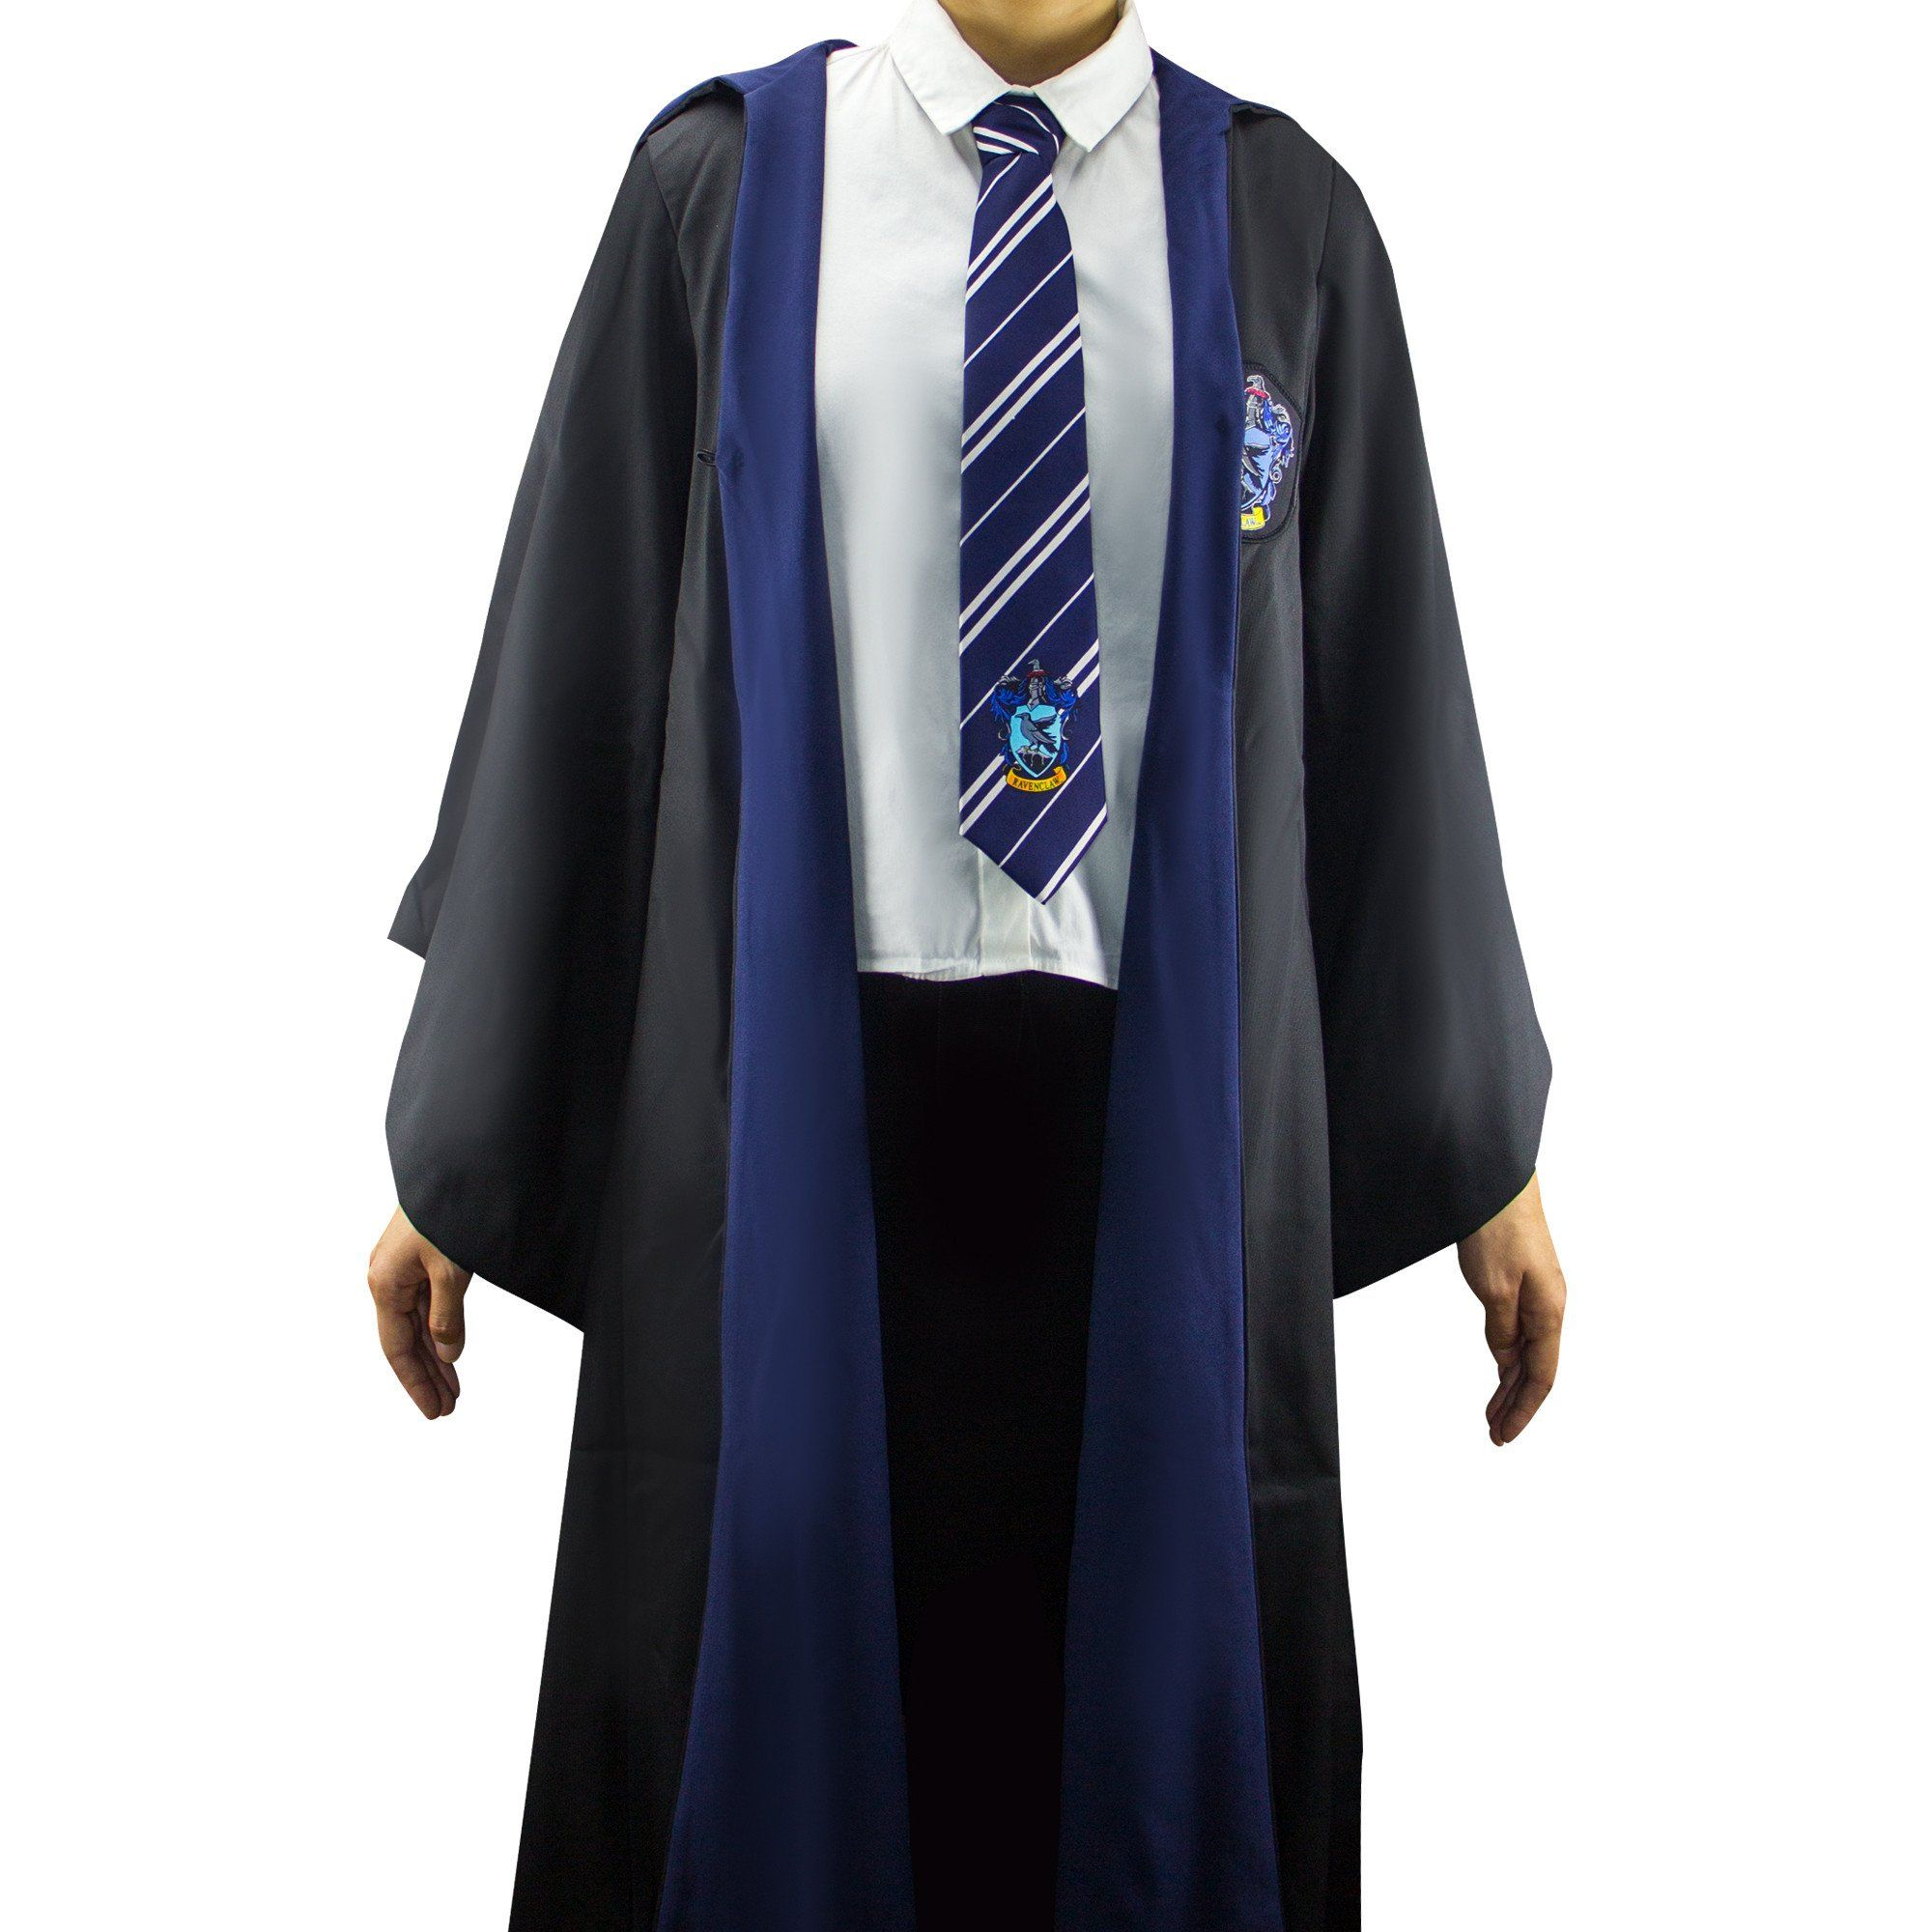 Adults Ravenclaw Robe Harry Potter Outfits Harry Potter